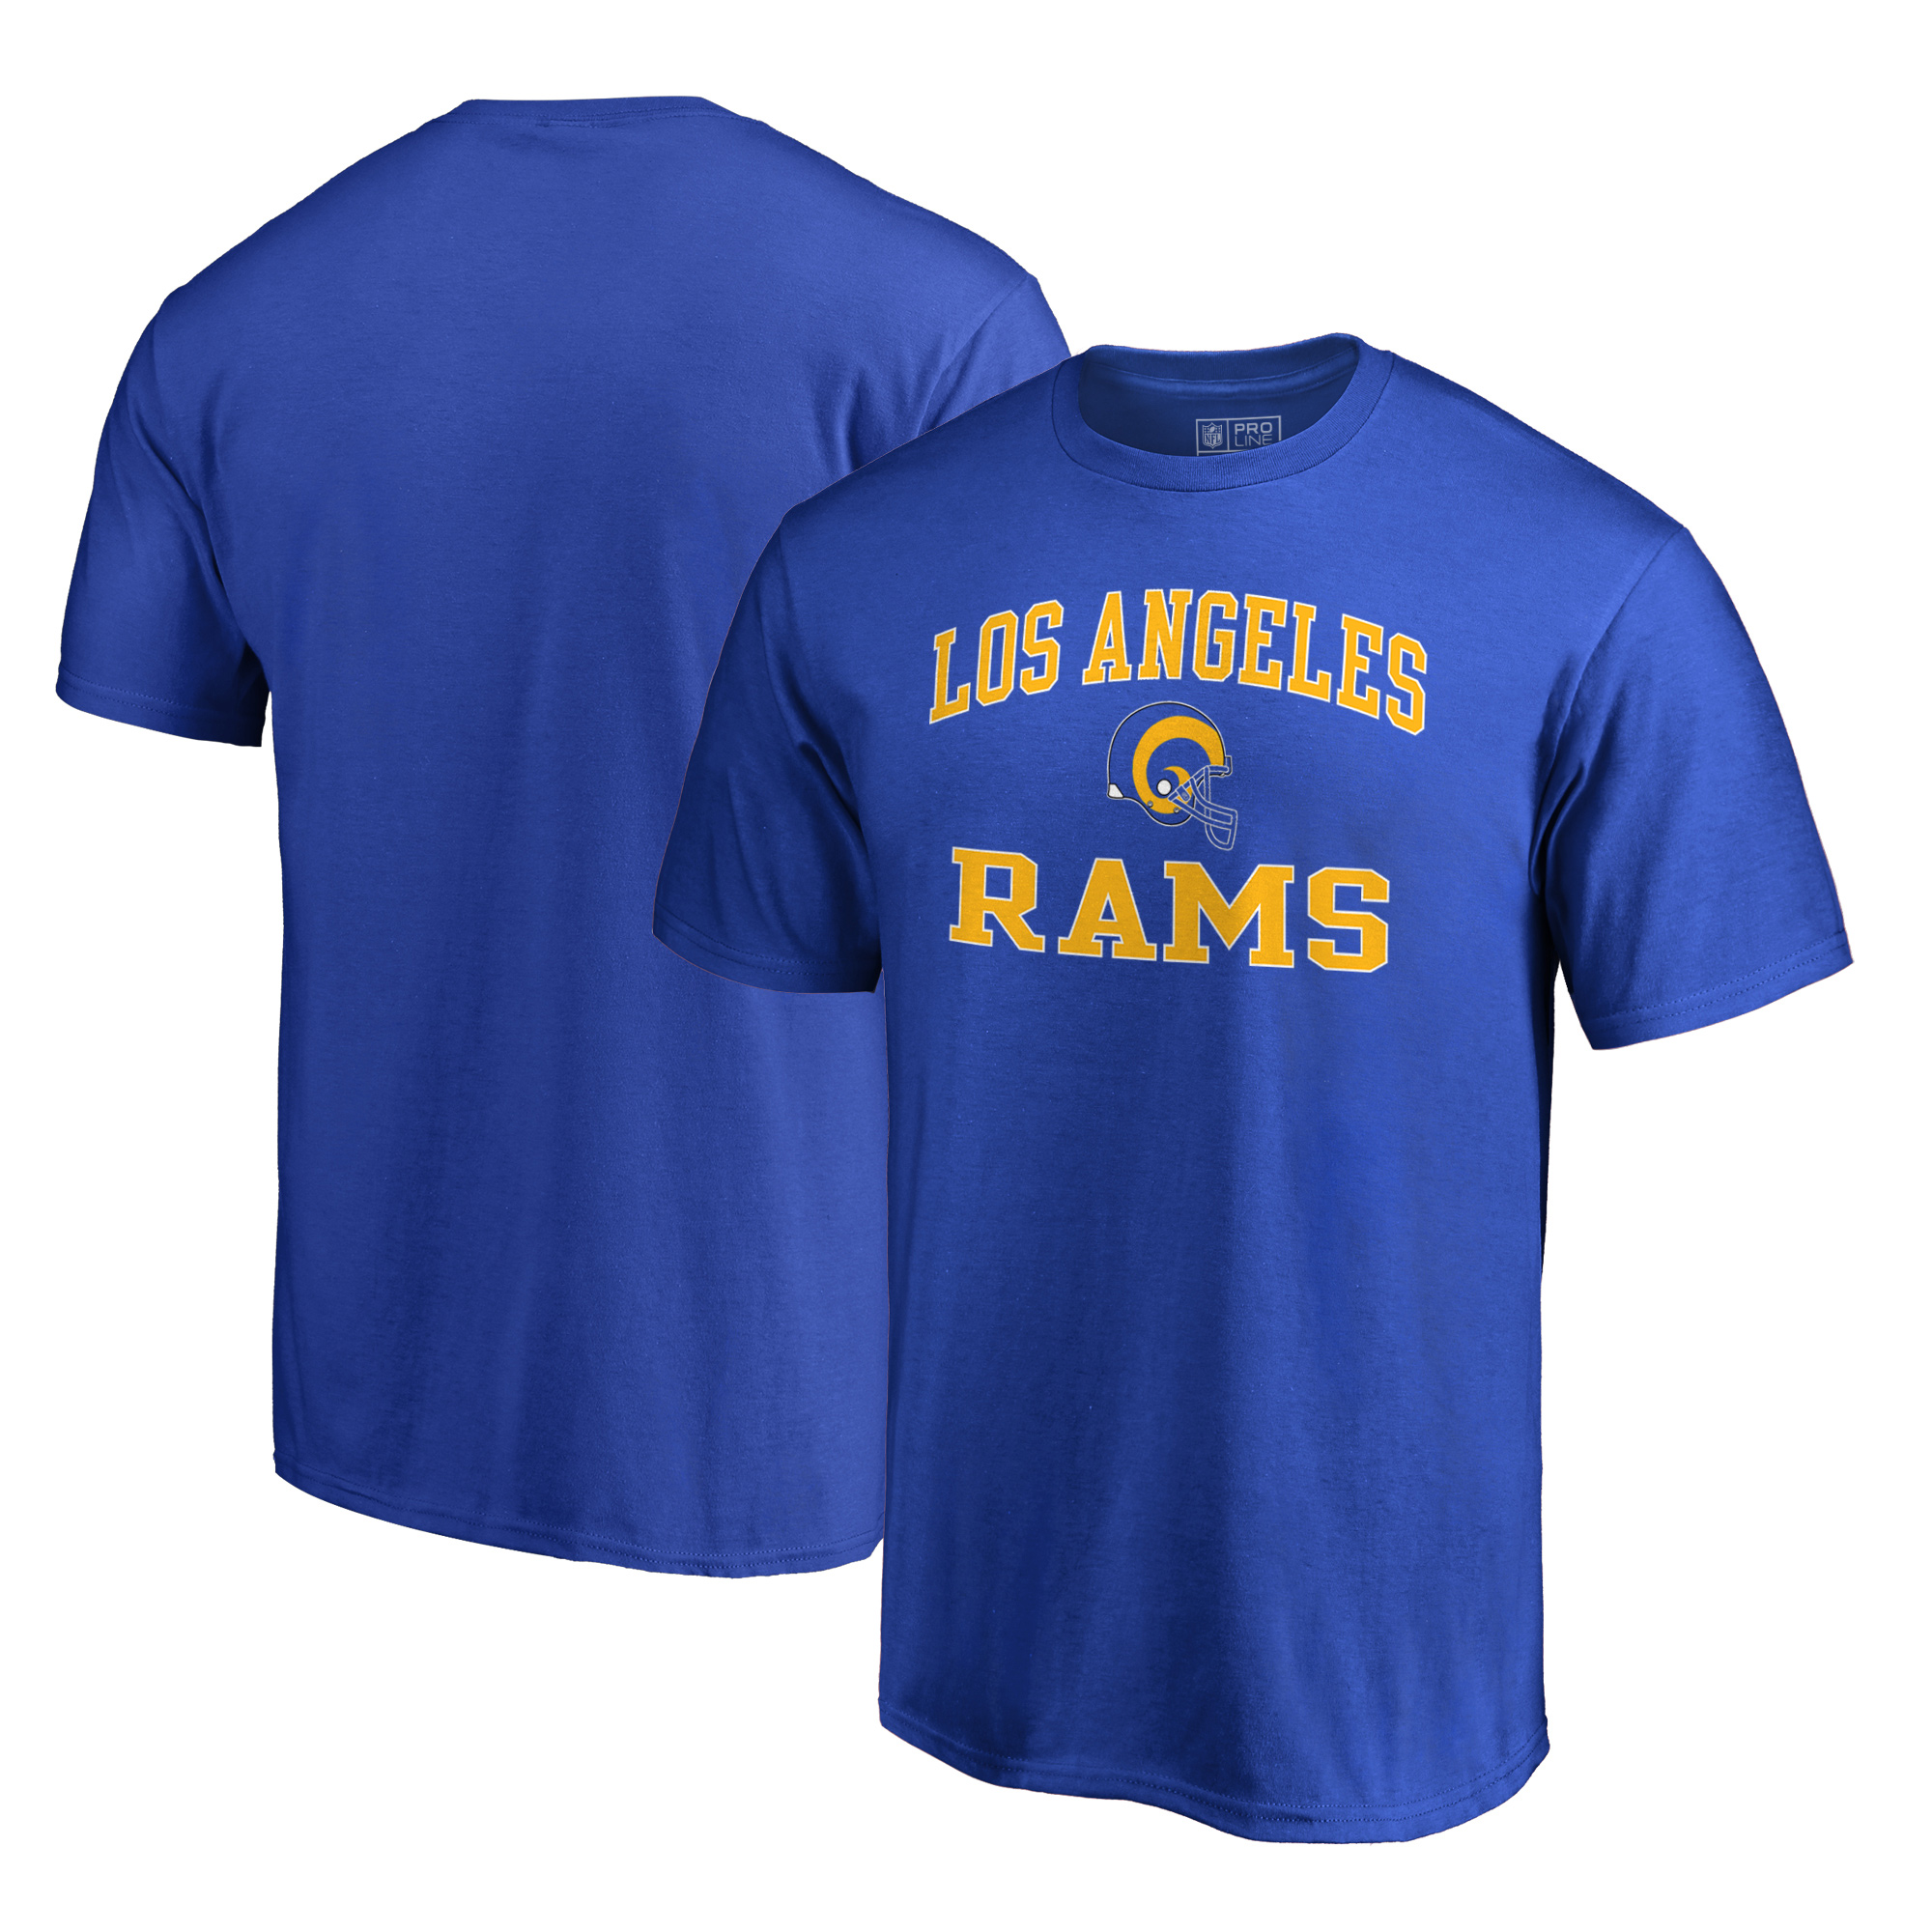 Los Angeles Rams NFL Pro Line by Fanatics Branded Vintage Victory Arch T-Shirt - Royal